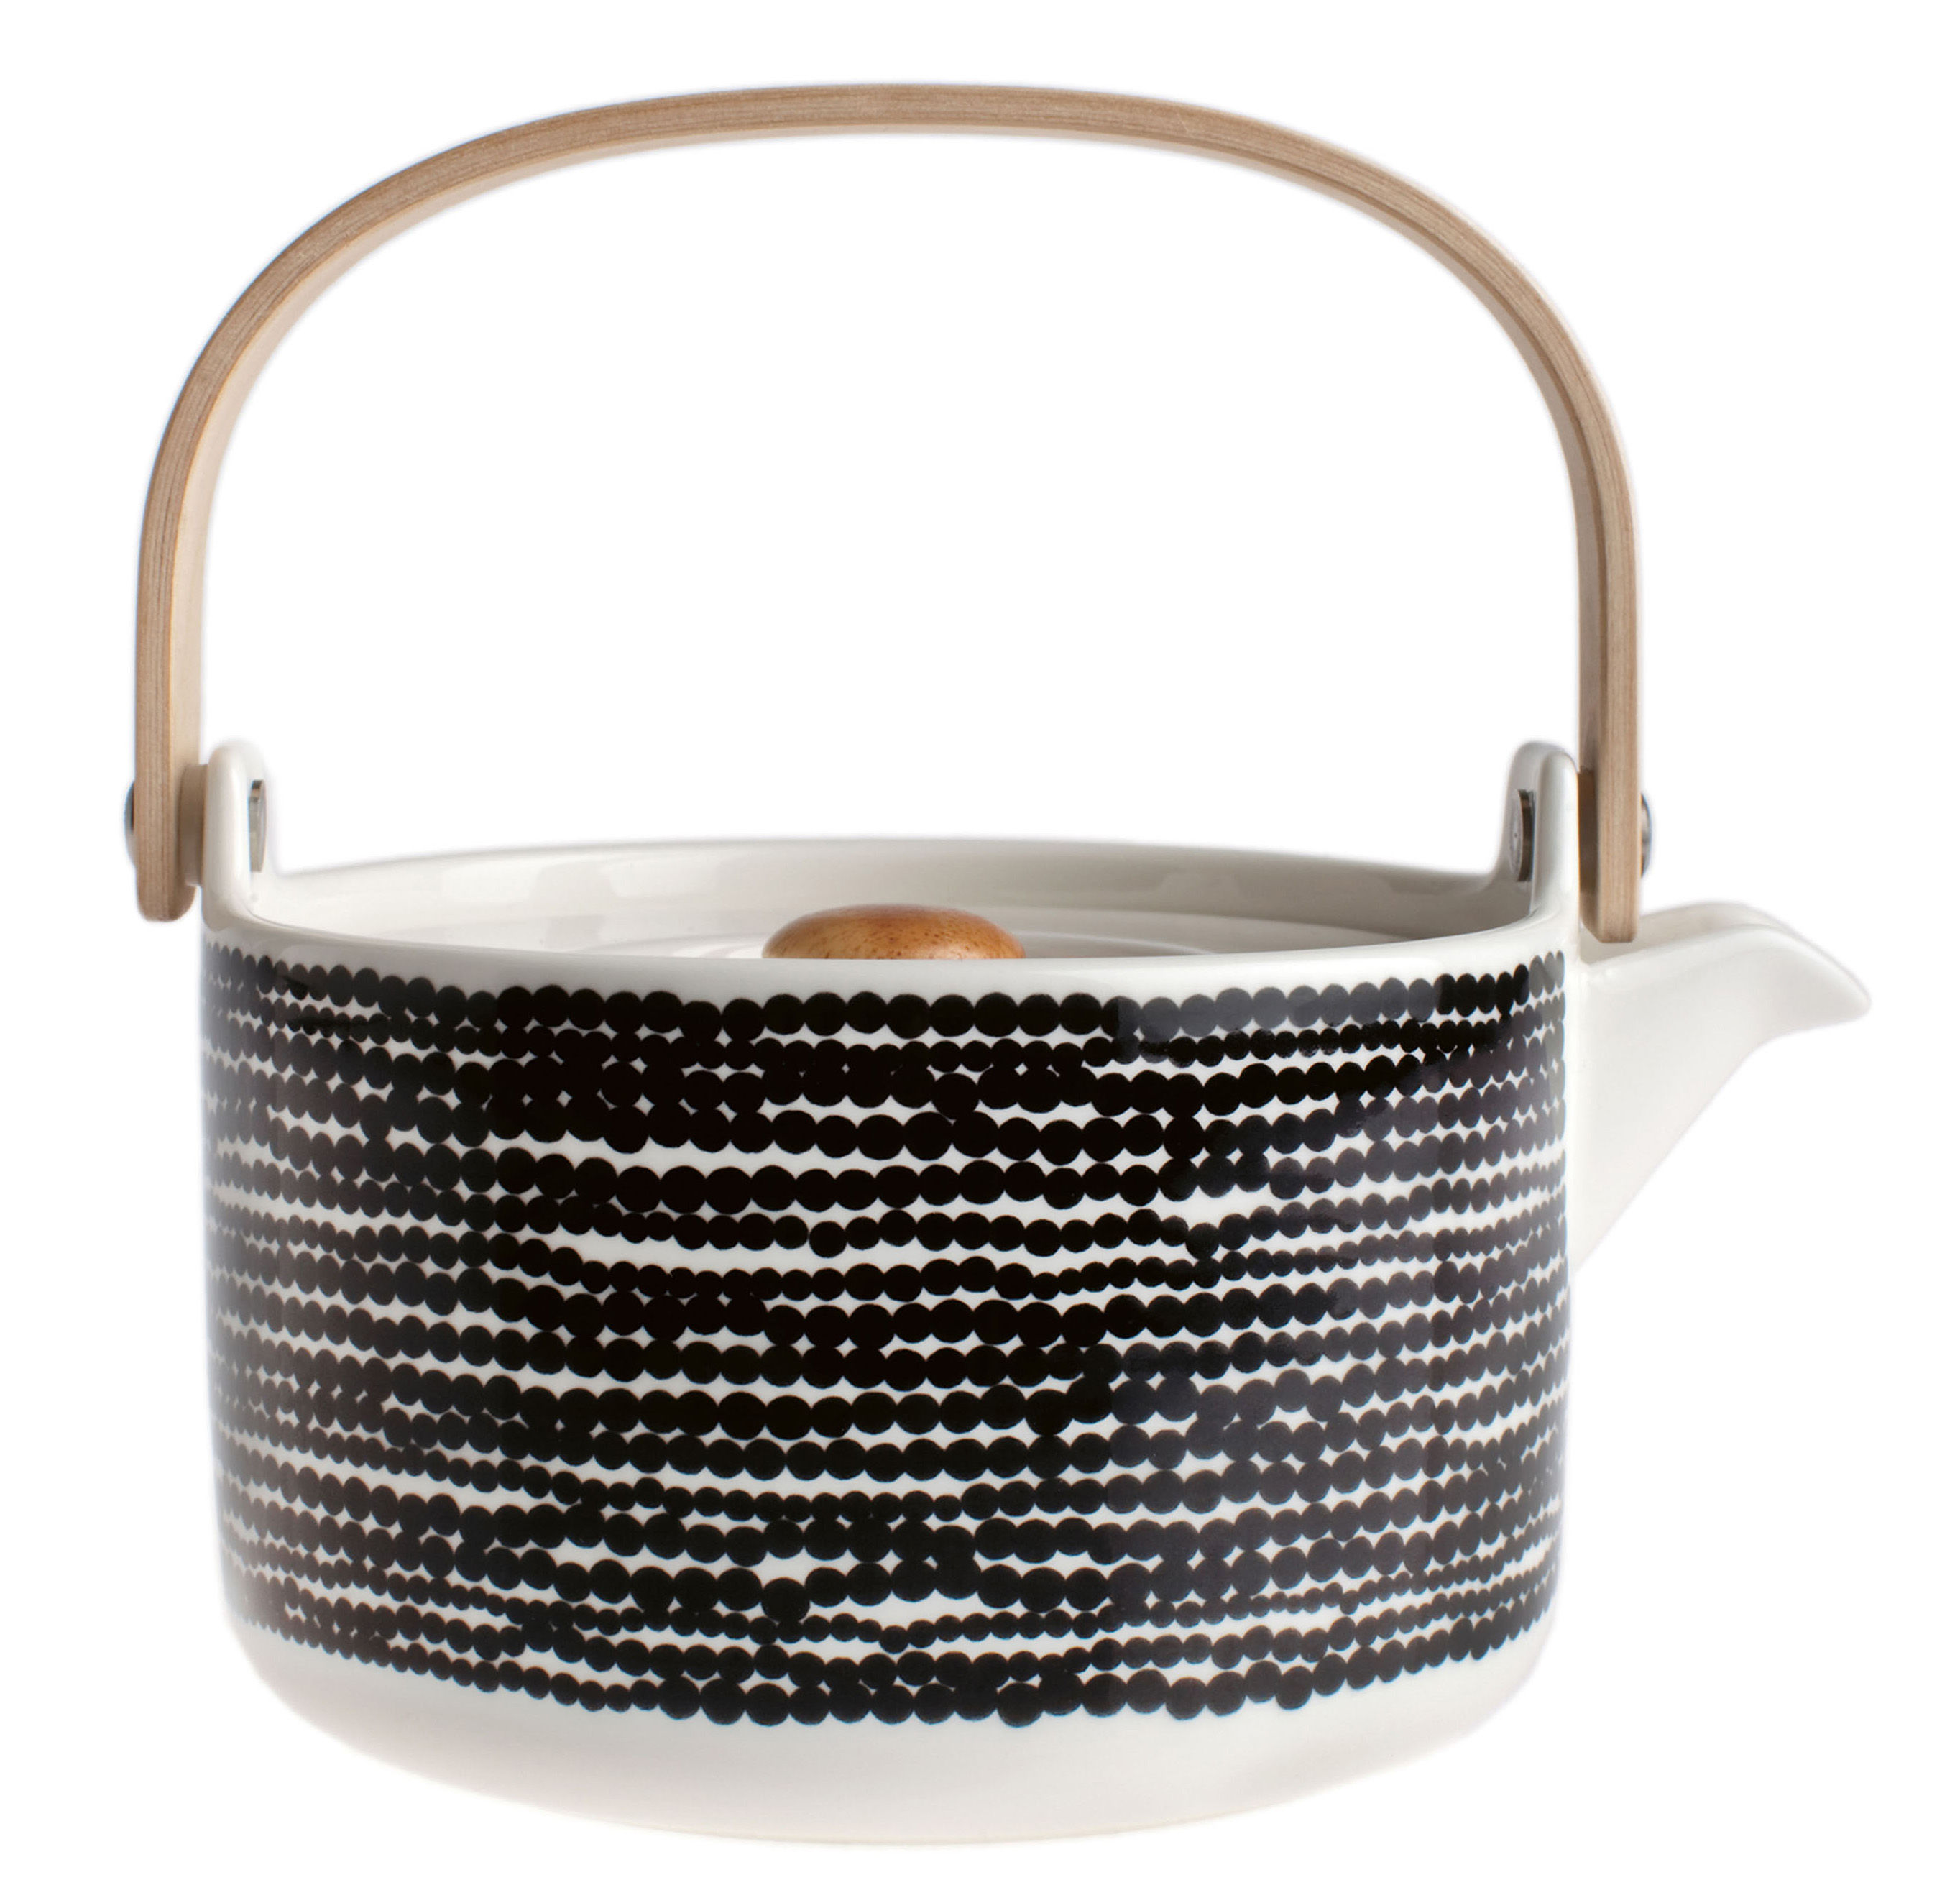 Tableware - Tea & Coffee Accessories - Siirtolapuutarha Teapot by Marimekko - Räsymatto - Black & white - Sandstone